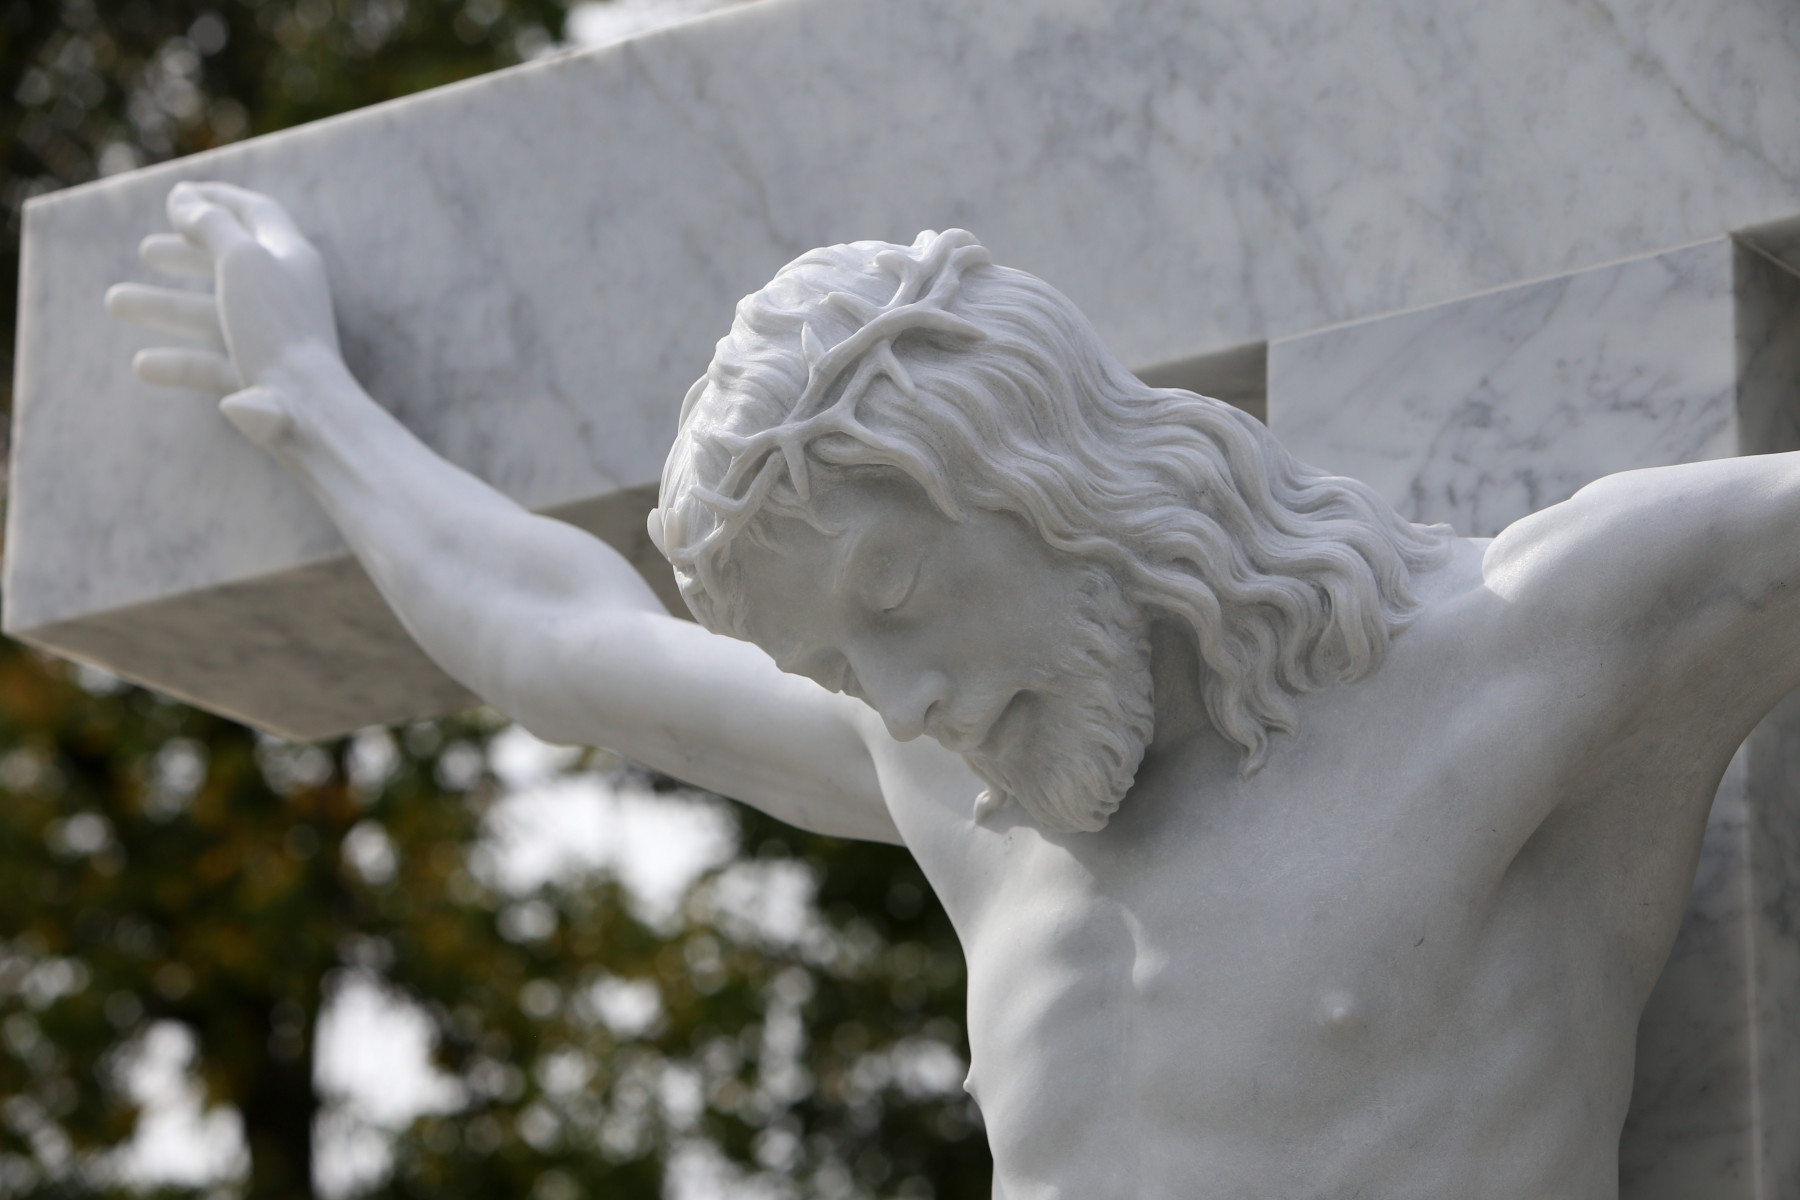 Monumental Sculpture & Design for a Rosary Walk and Garden